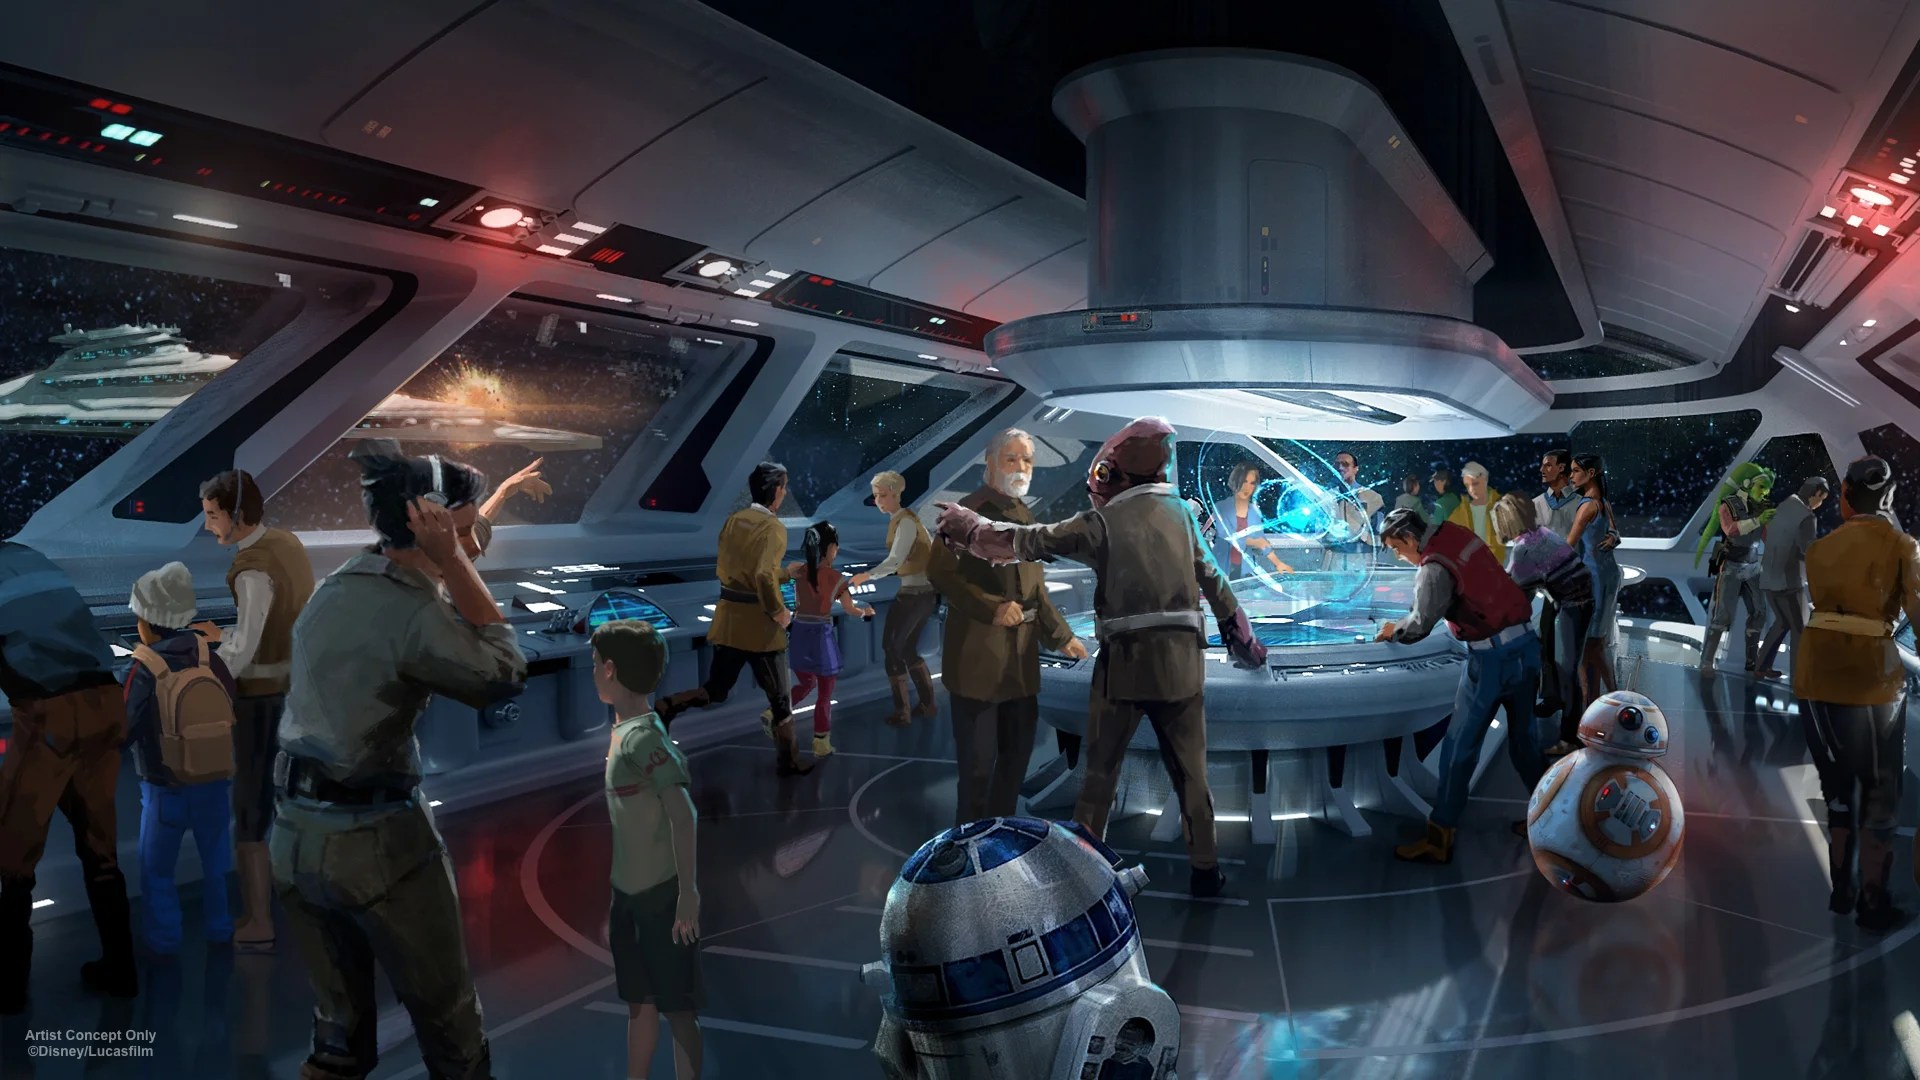 Everything We Know About Disney's Star Wars Hotel